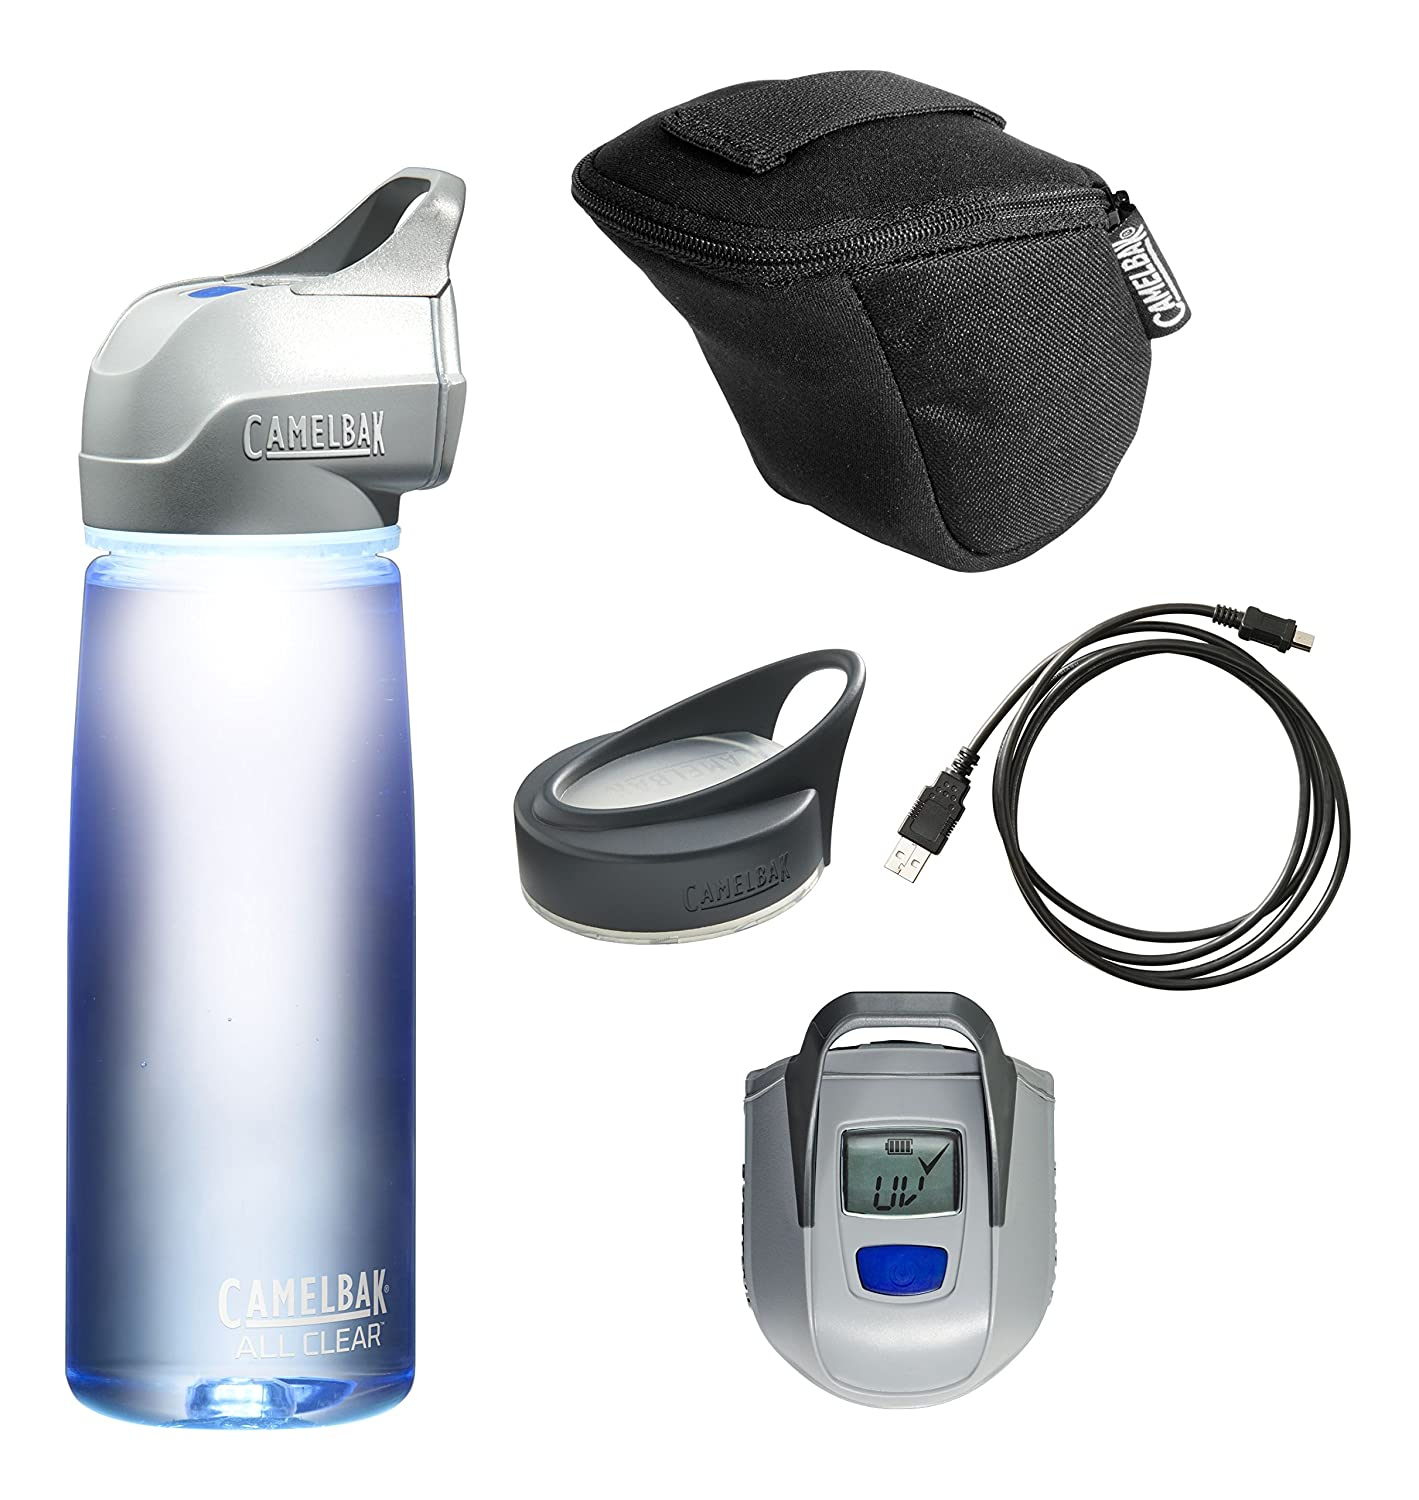 camelbak water purifier